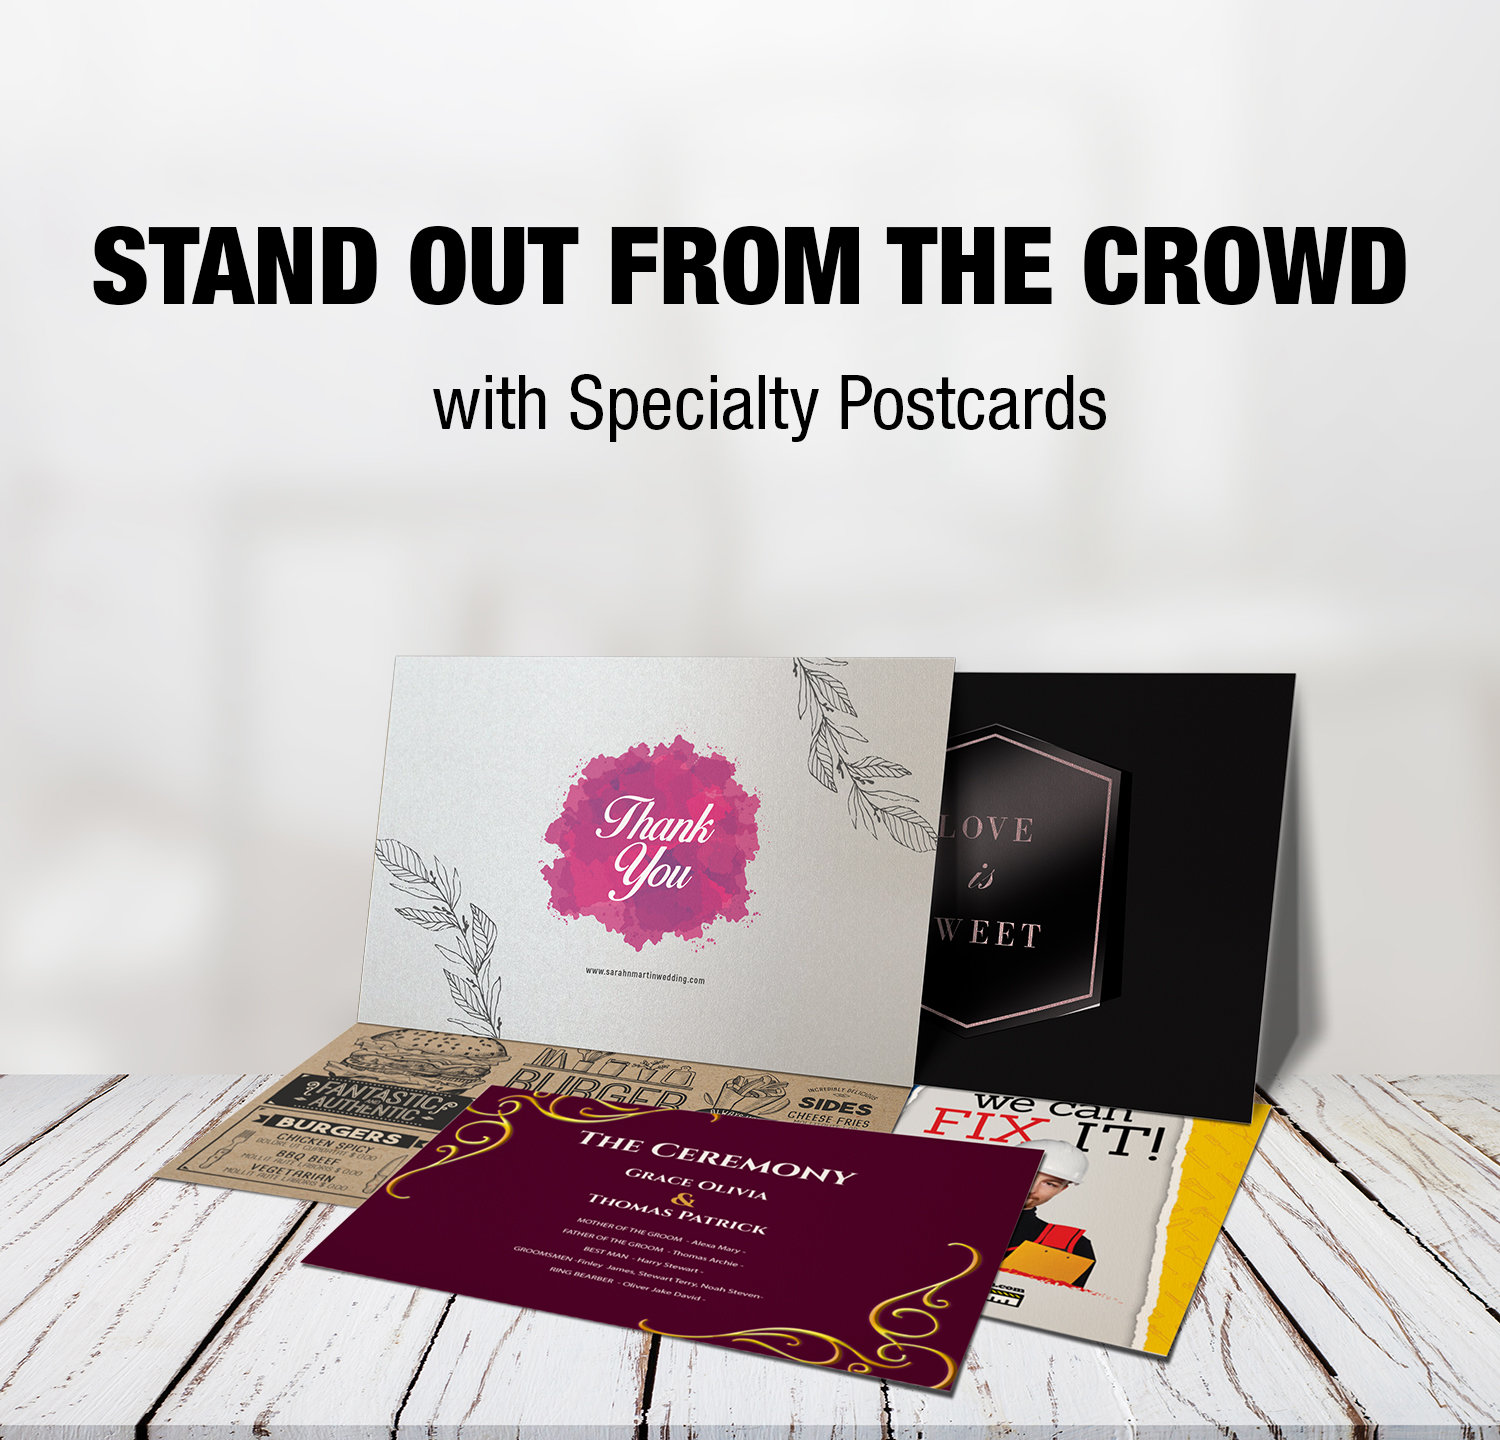 stand out from the crowd with specialty postcards